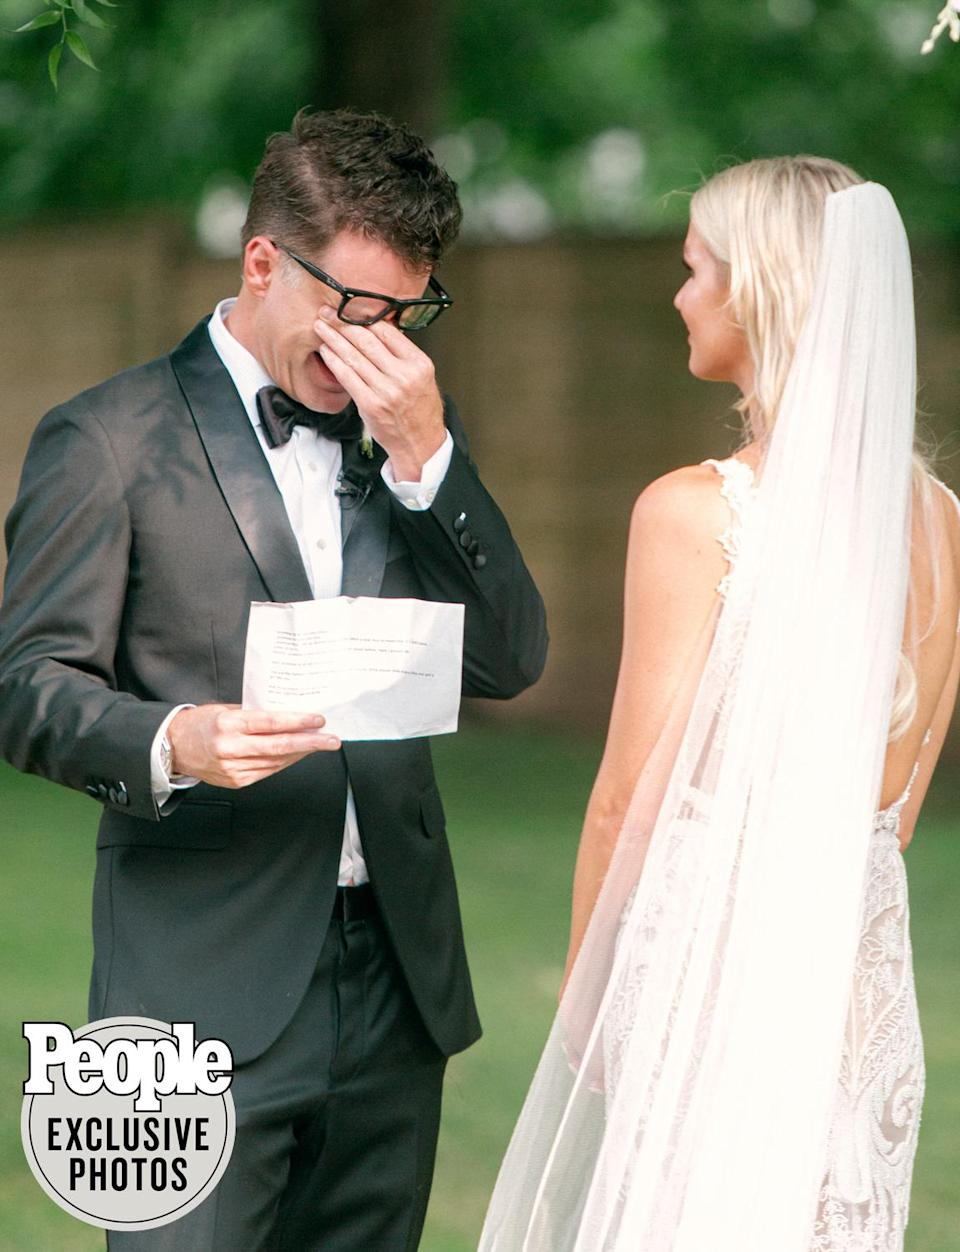 """<p>Bones grew emotional as he and Parker exchanged vows they'd written themselves. """"All the tears flowed in the ceremony,"""" he told PEOPLE on Sunday. """"None left for dancing! It was smooth sailing during the reception.""""</p>"""